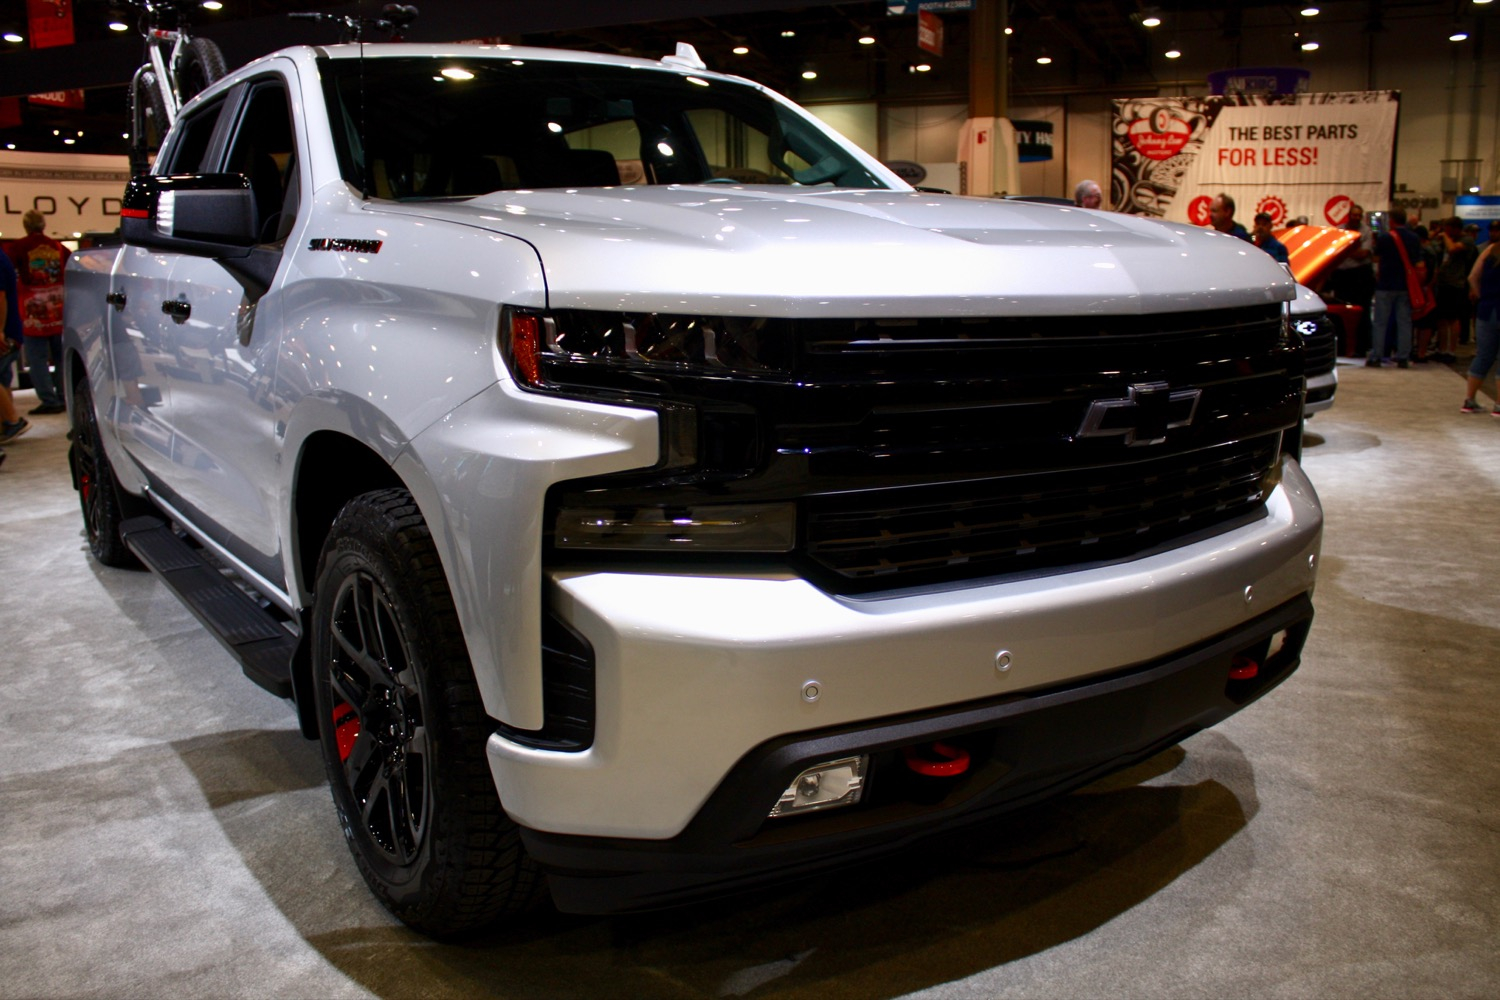 Silverado Redline Concept Going Into Production For 2021 2021 Chevy Express Parts, Price, Review